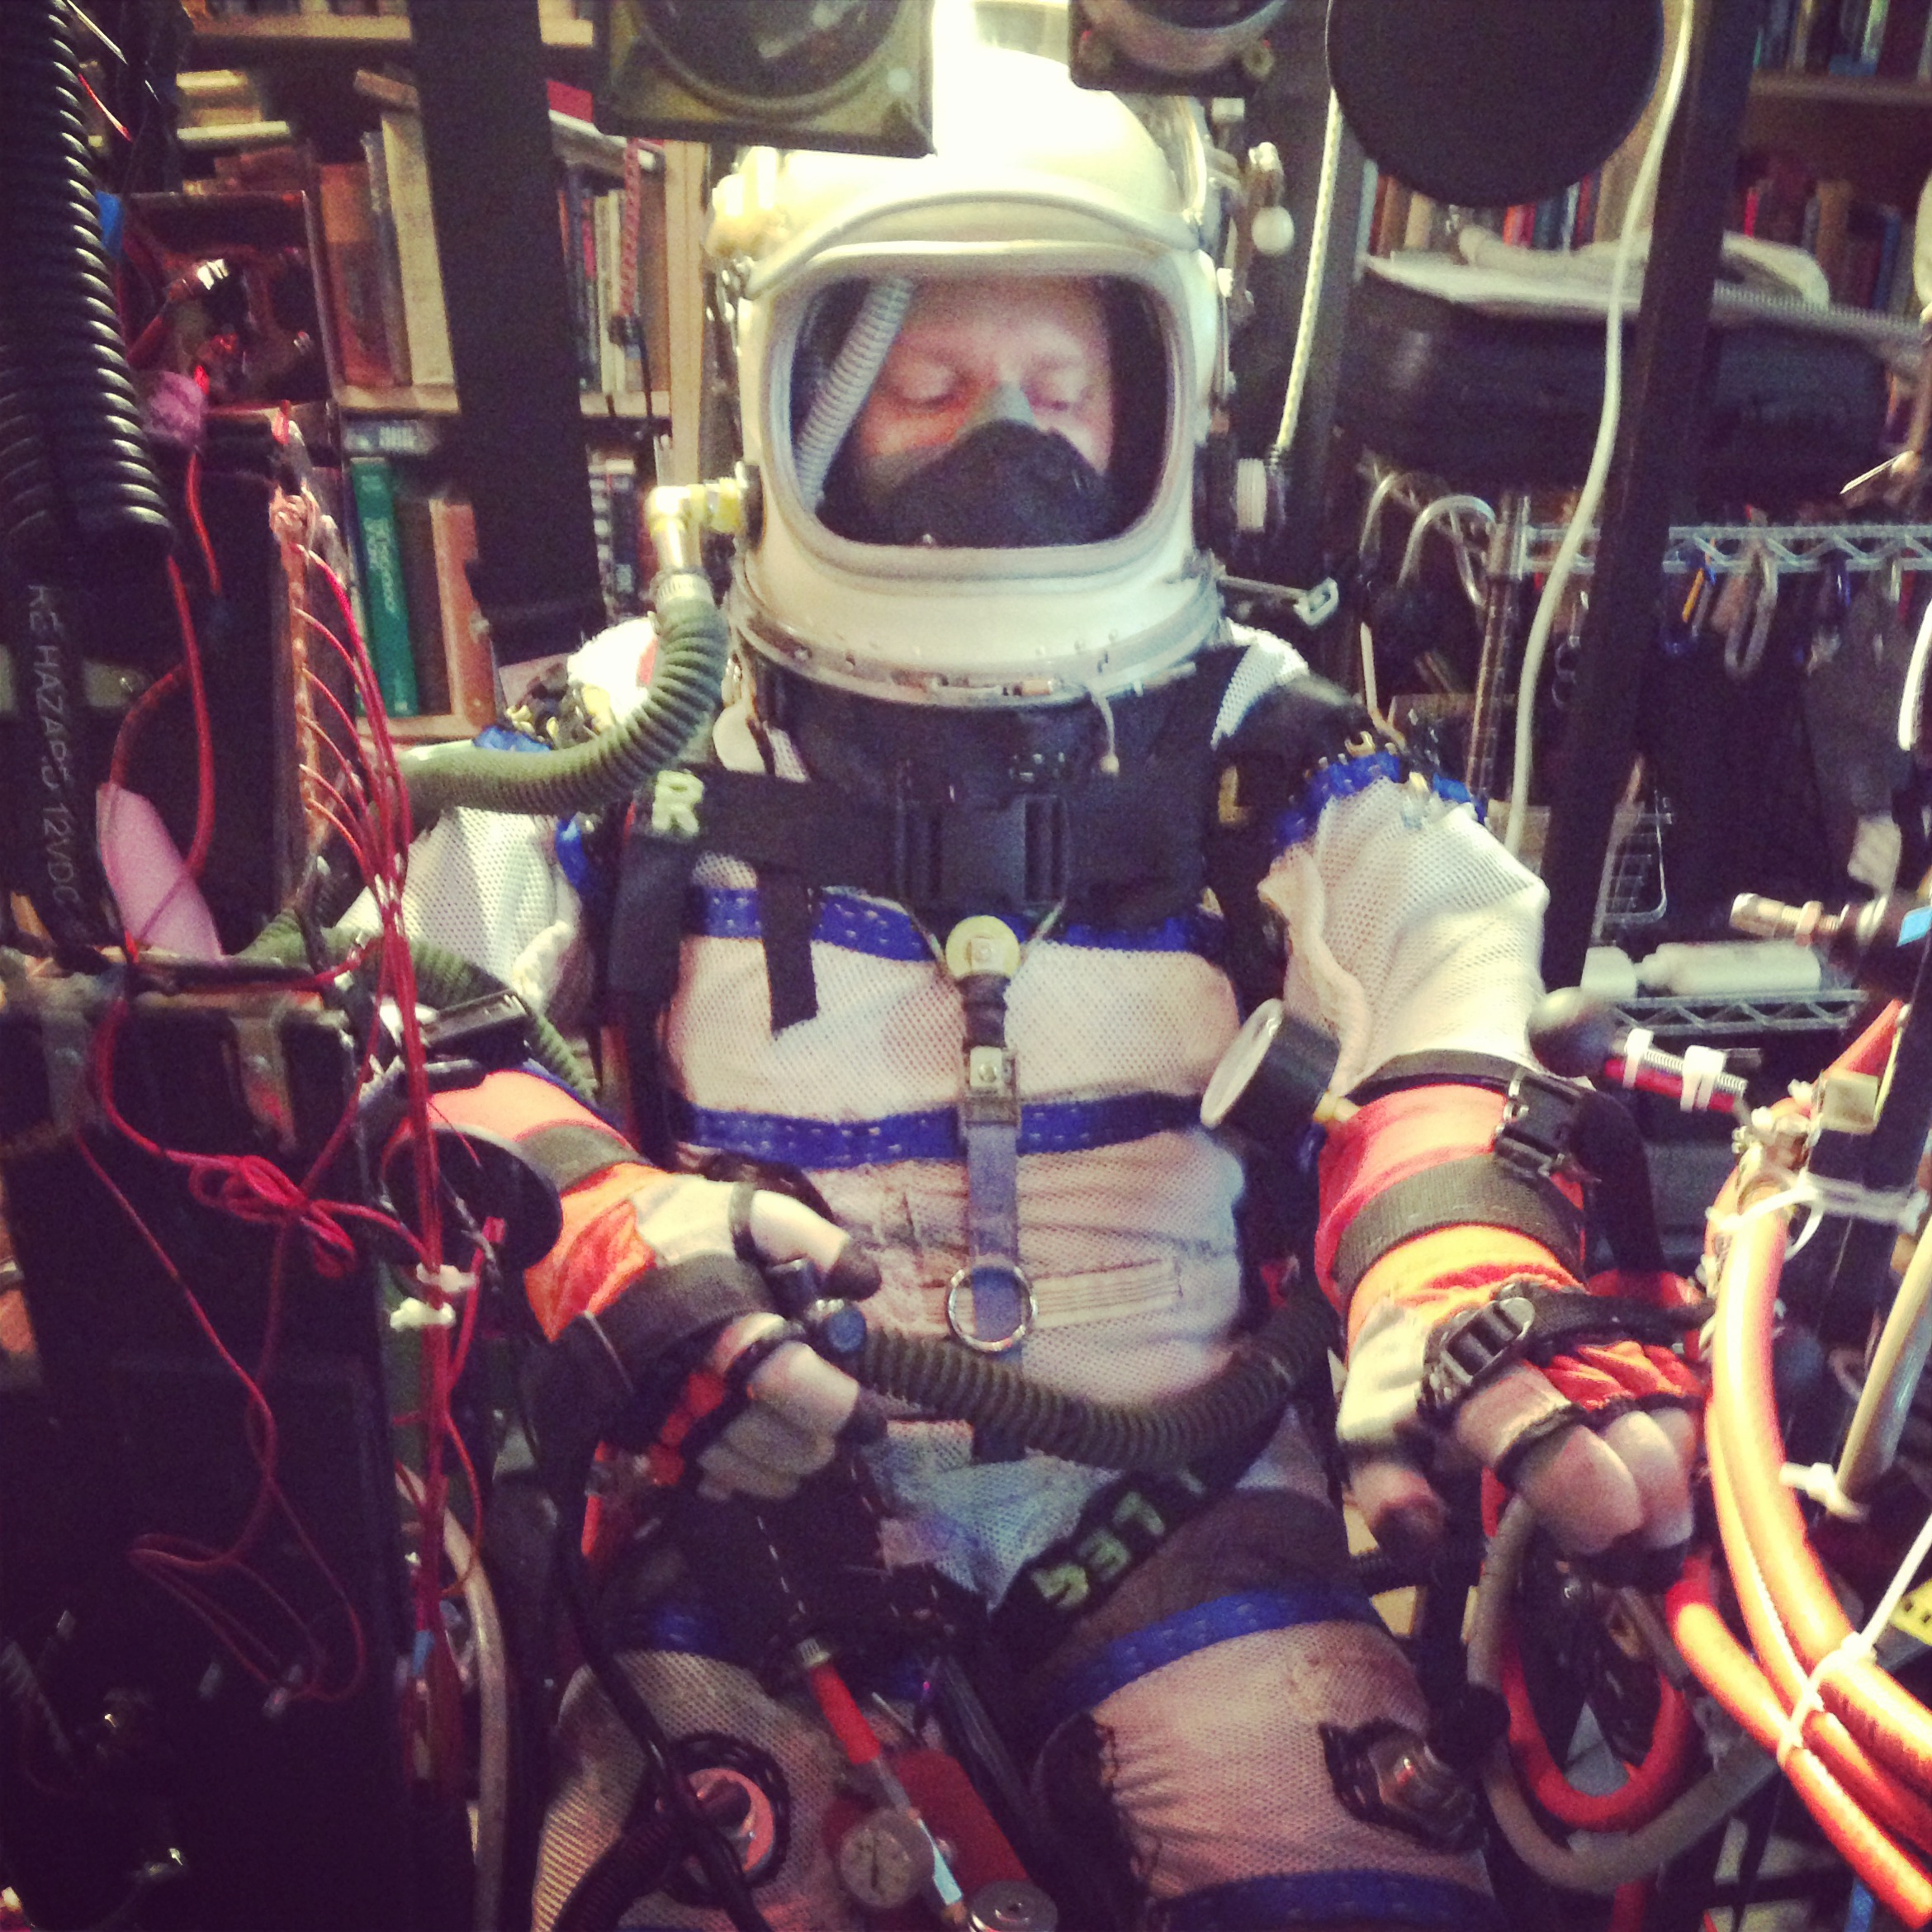 Caption: Cameron Smith testing out his homemade, hand-sewn space suit, Credit: Julie Sabatier